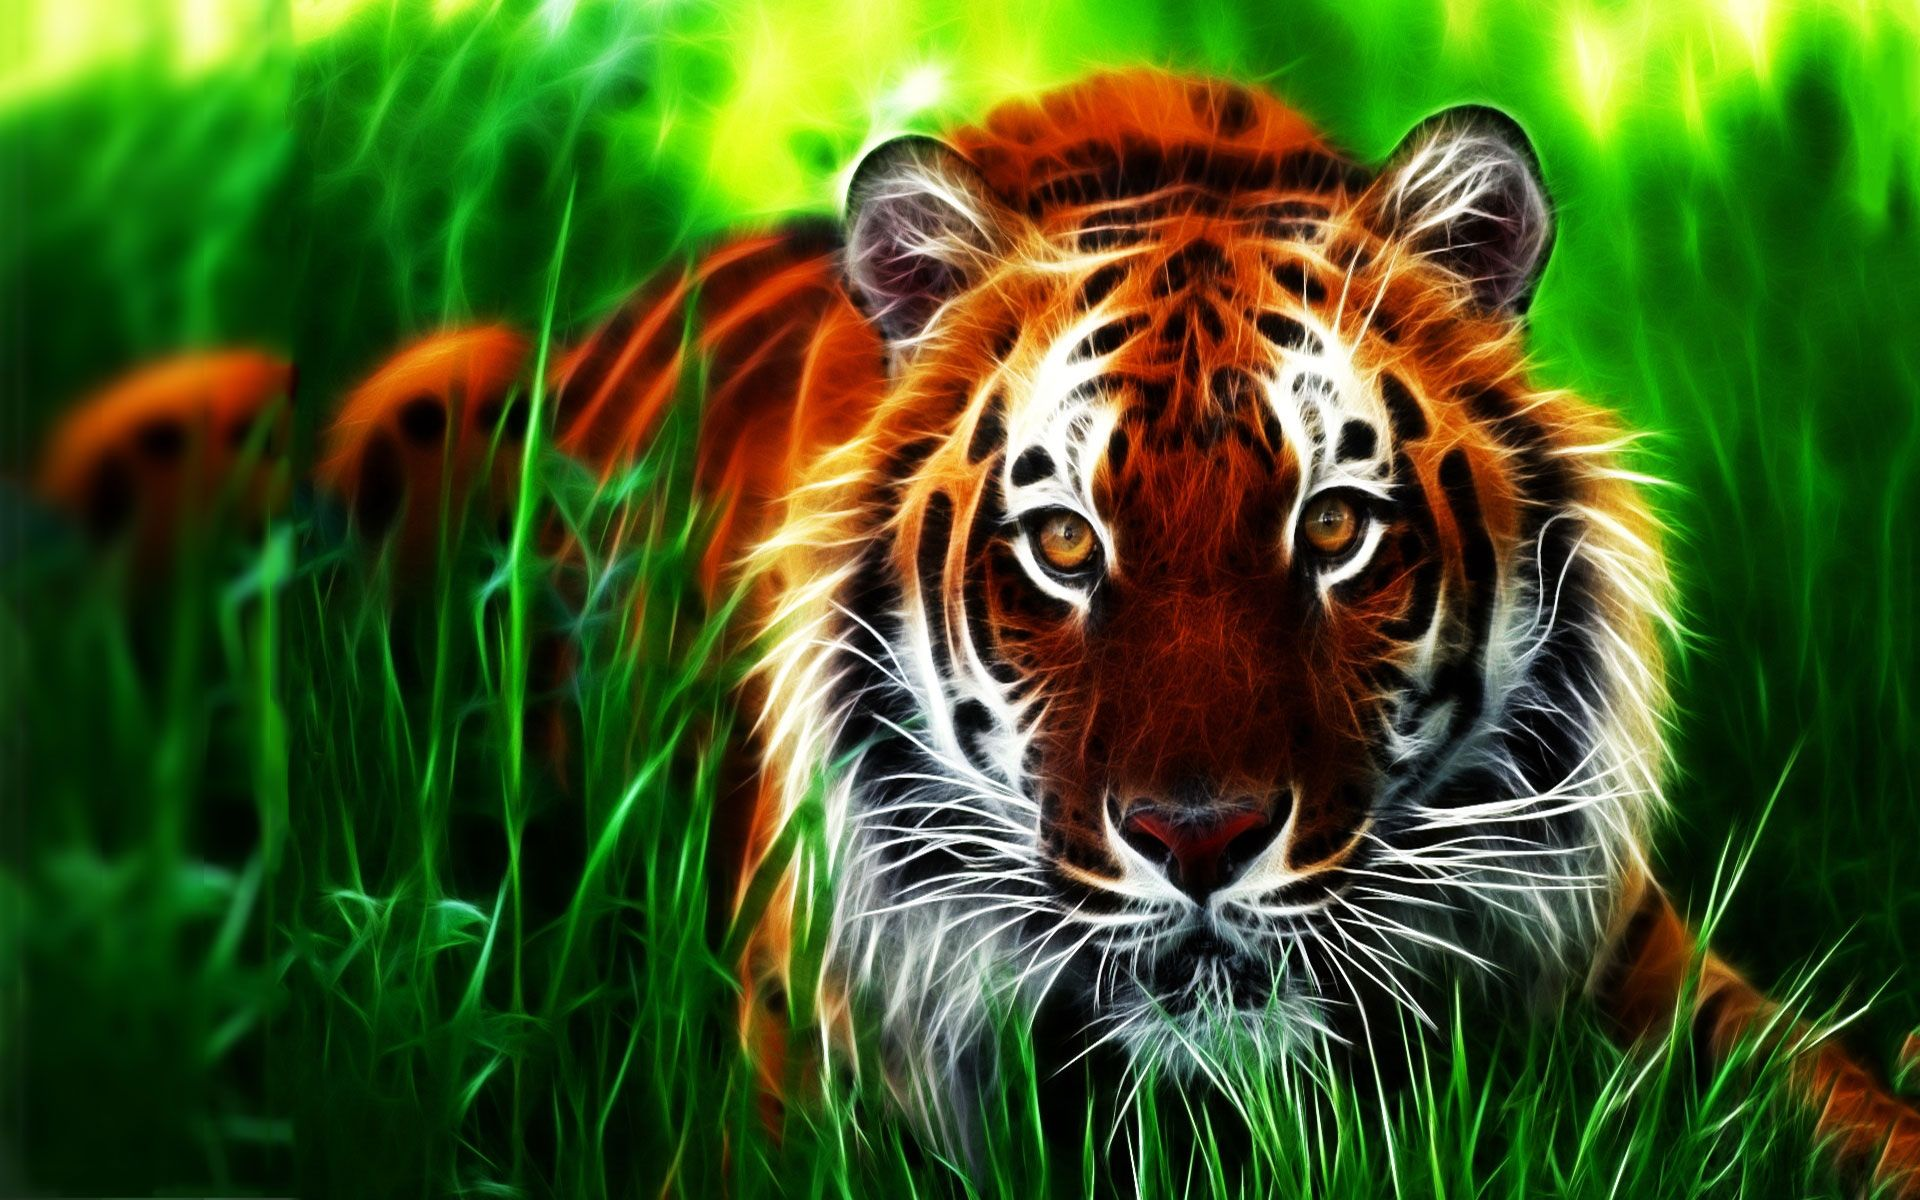 Best 3D Animal Wallpaper HD Animated Animal Wallpaper